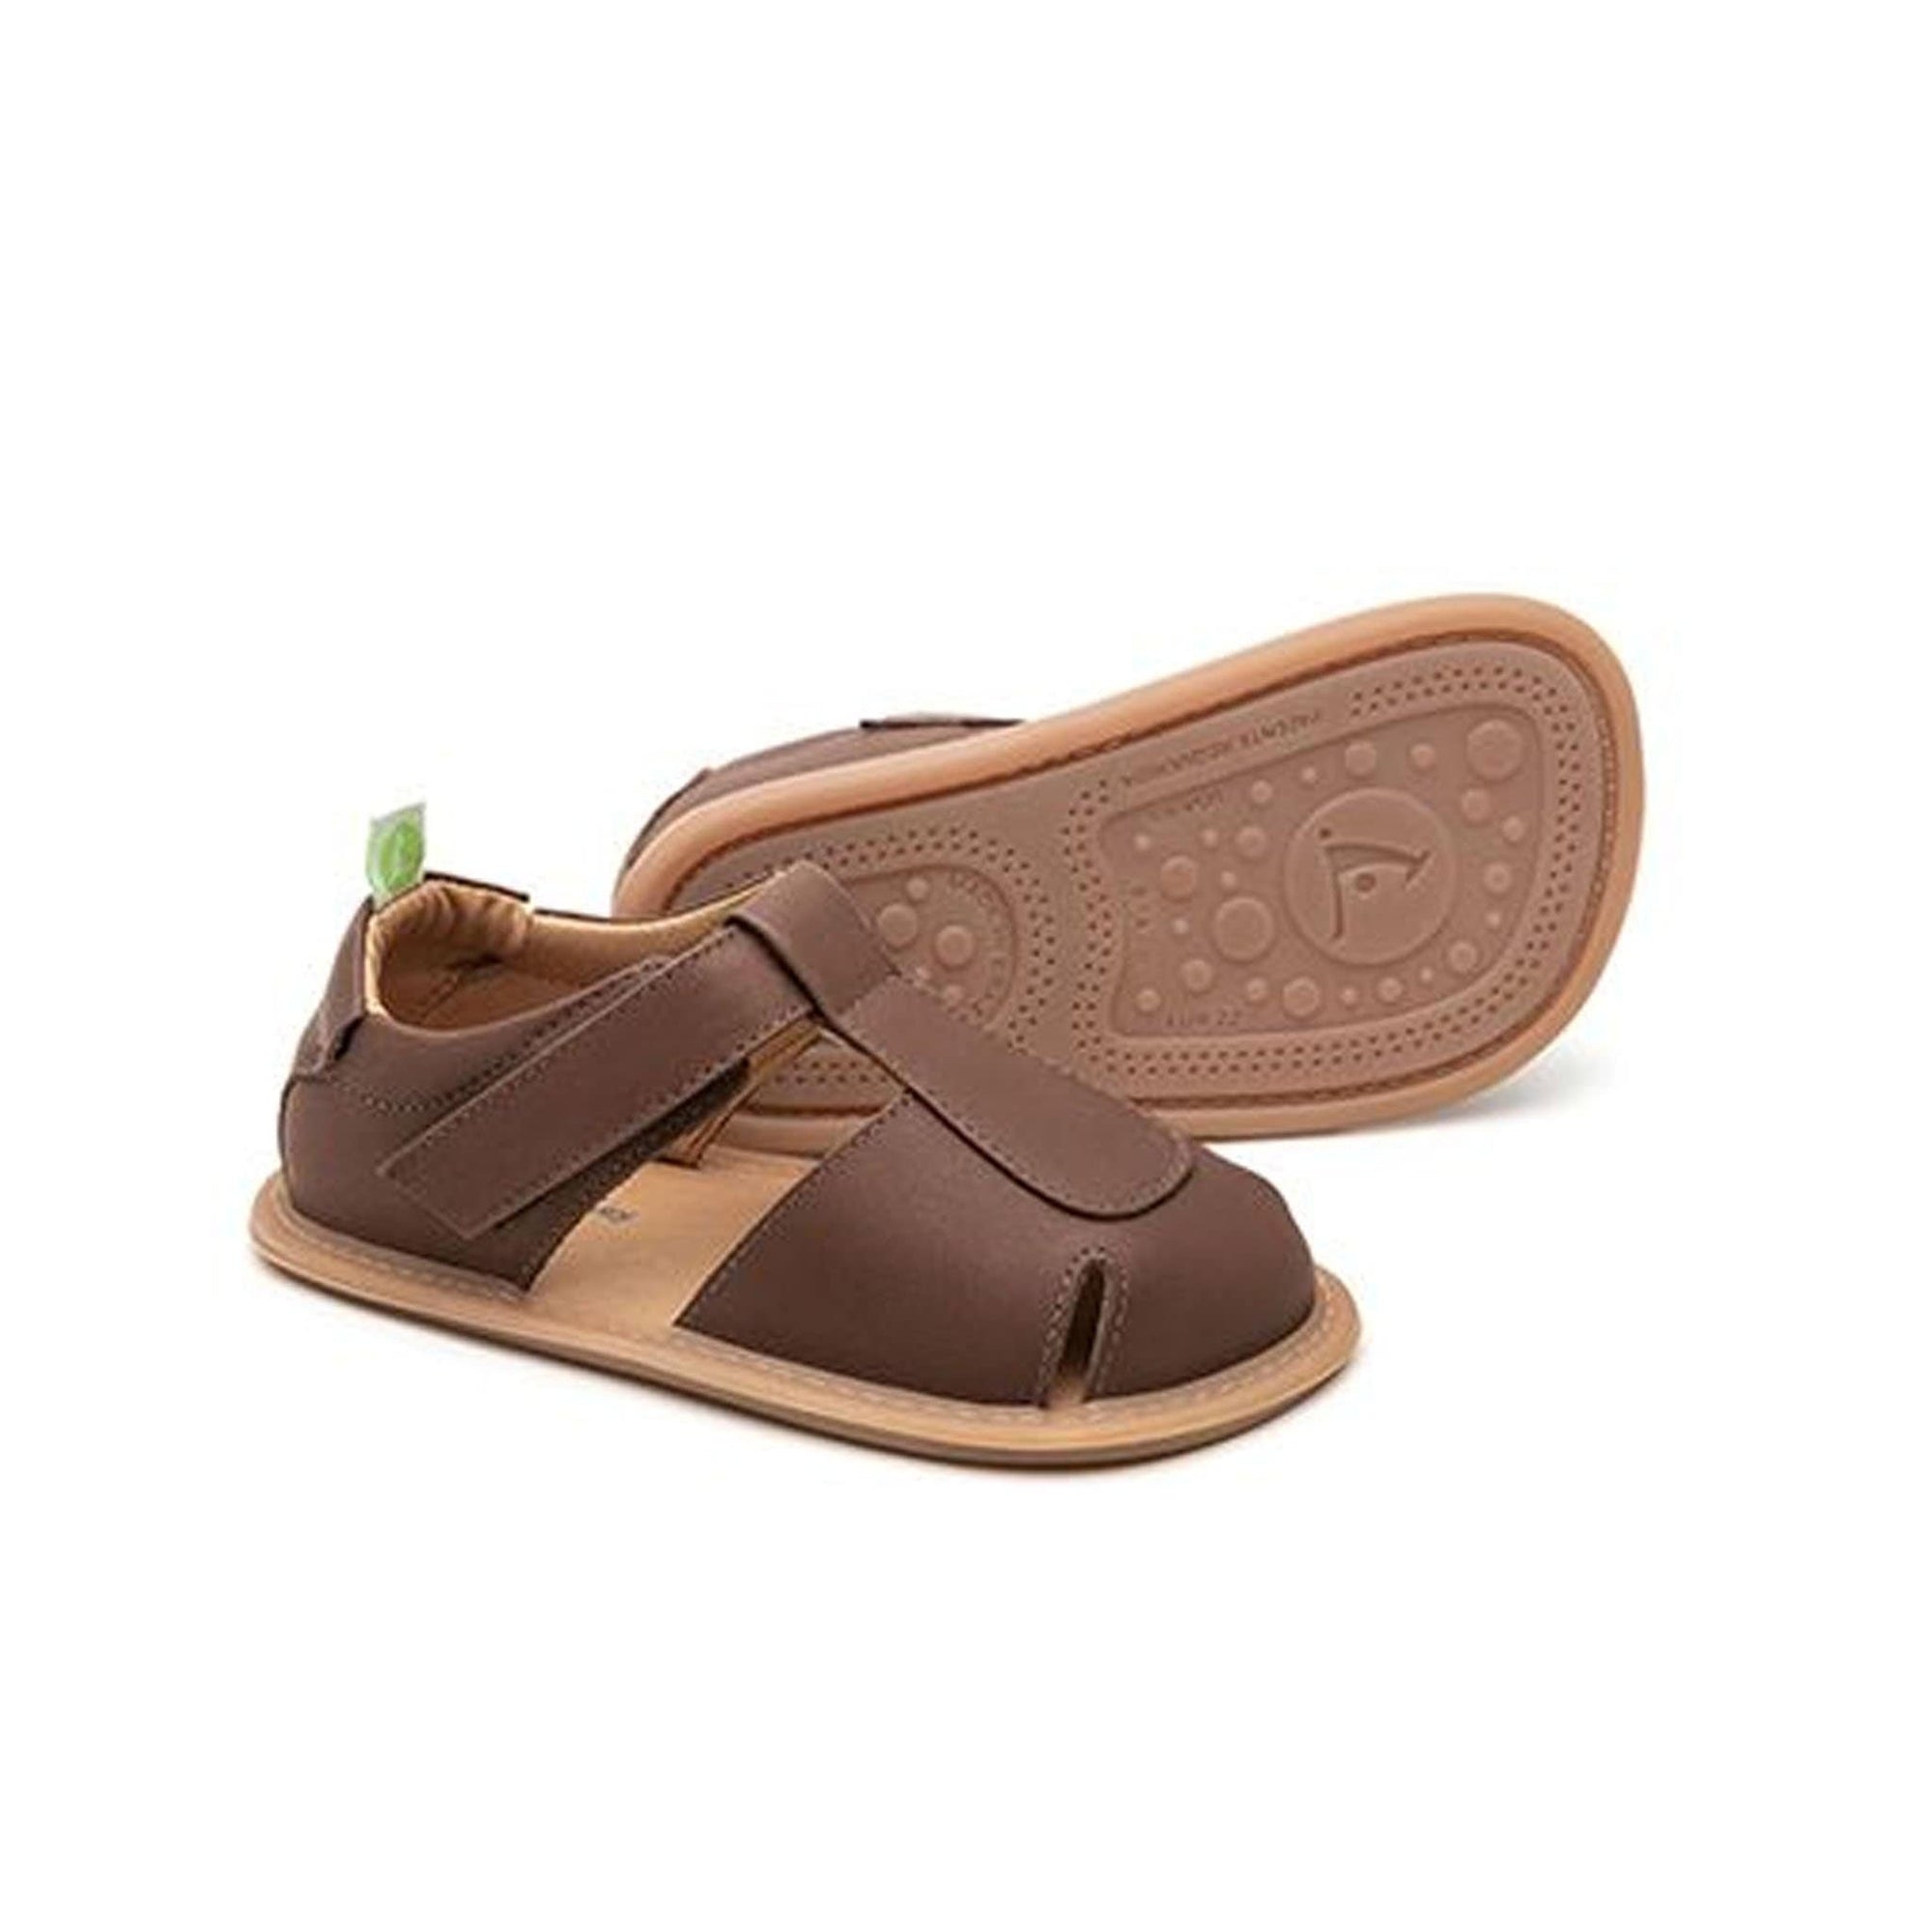 Tip Toey Joey Parky Sandal - Old Brown